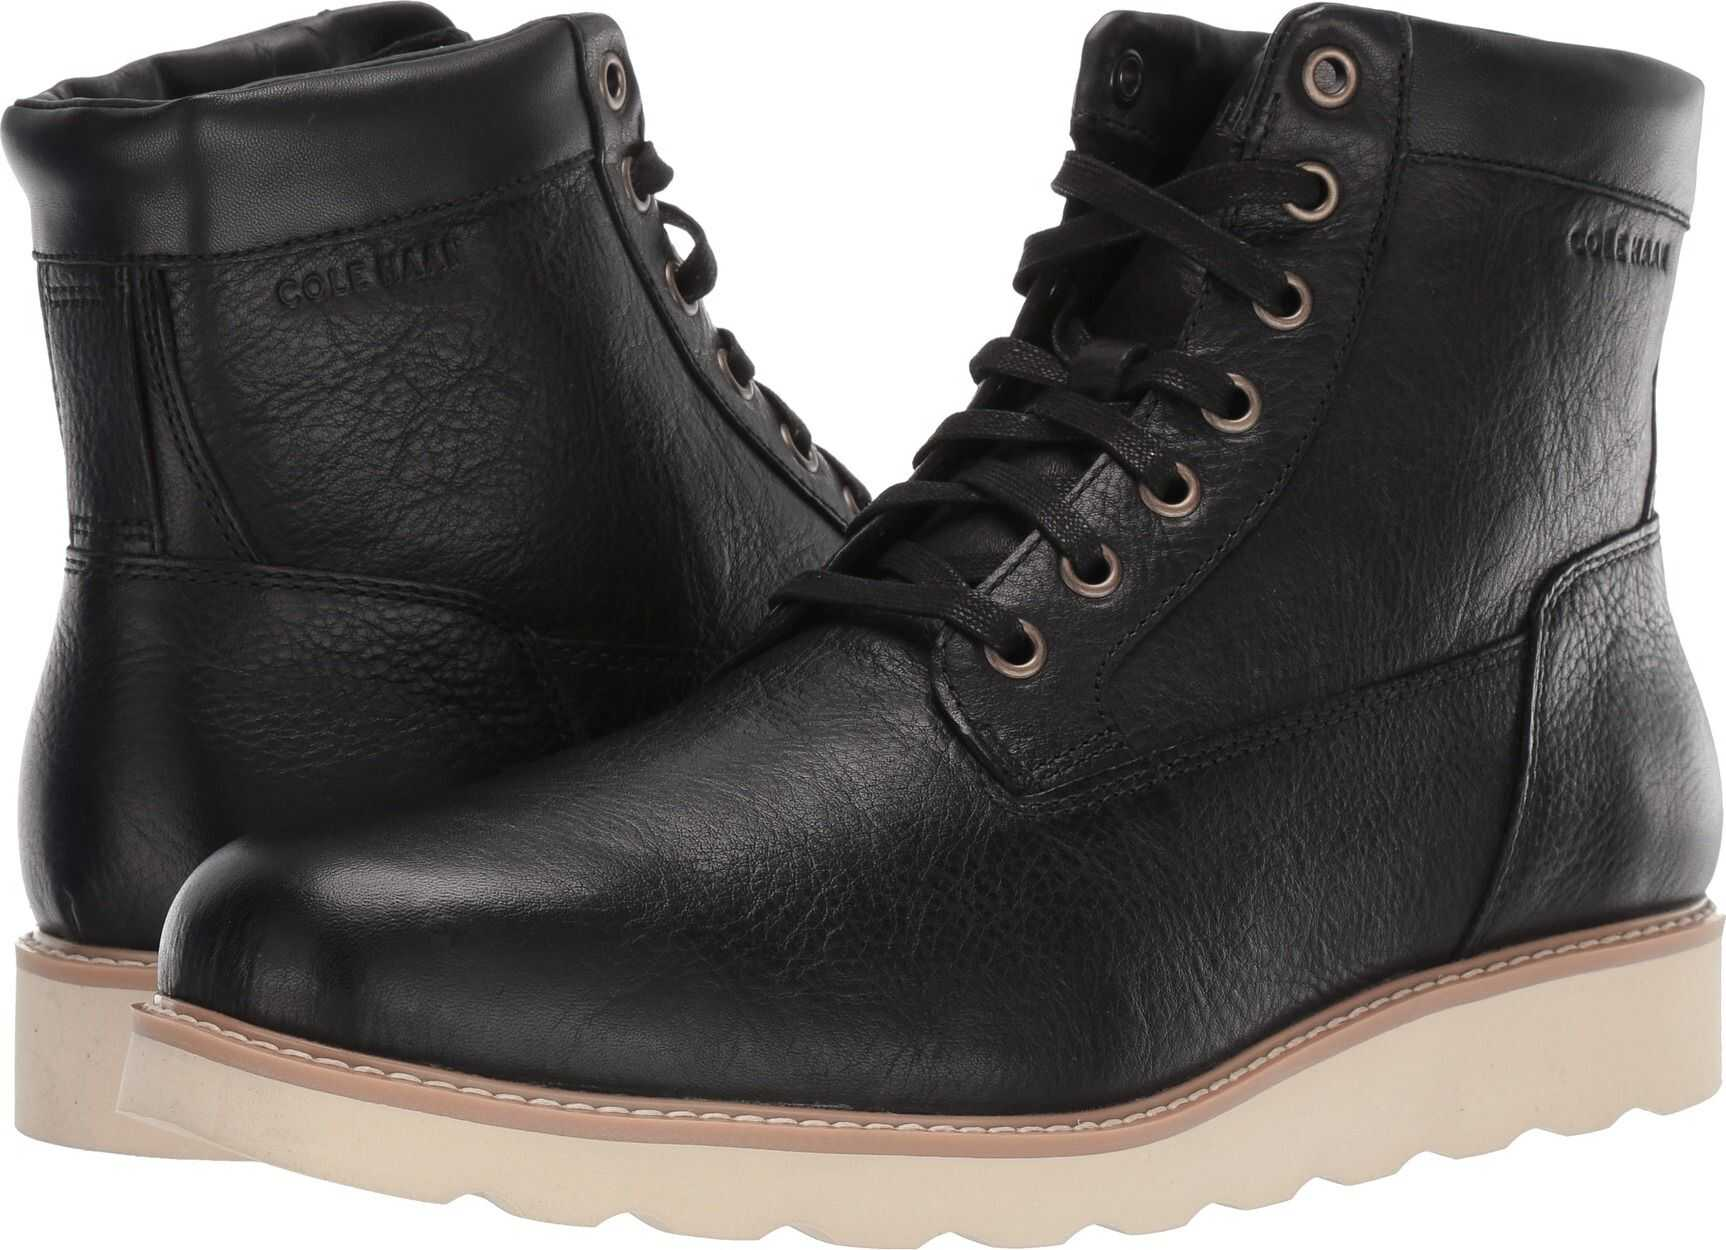 Cole Haan Nantucket Rugged Plain Boot Black 1